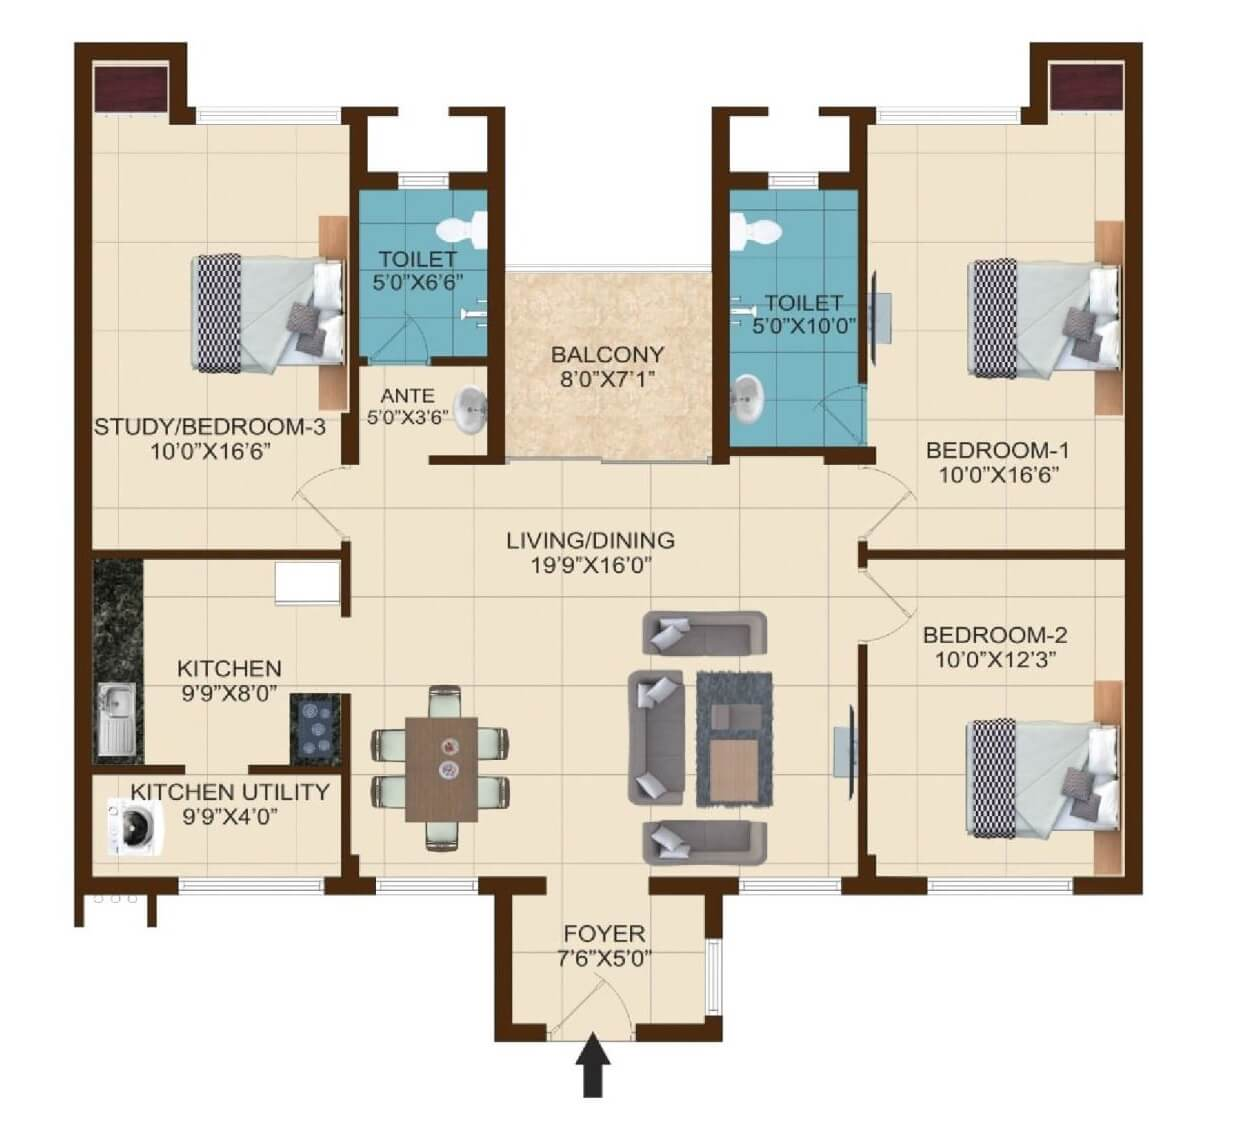 shriram temple bells apartment 3bhk 1495sqft 1